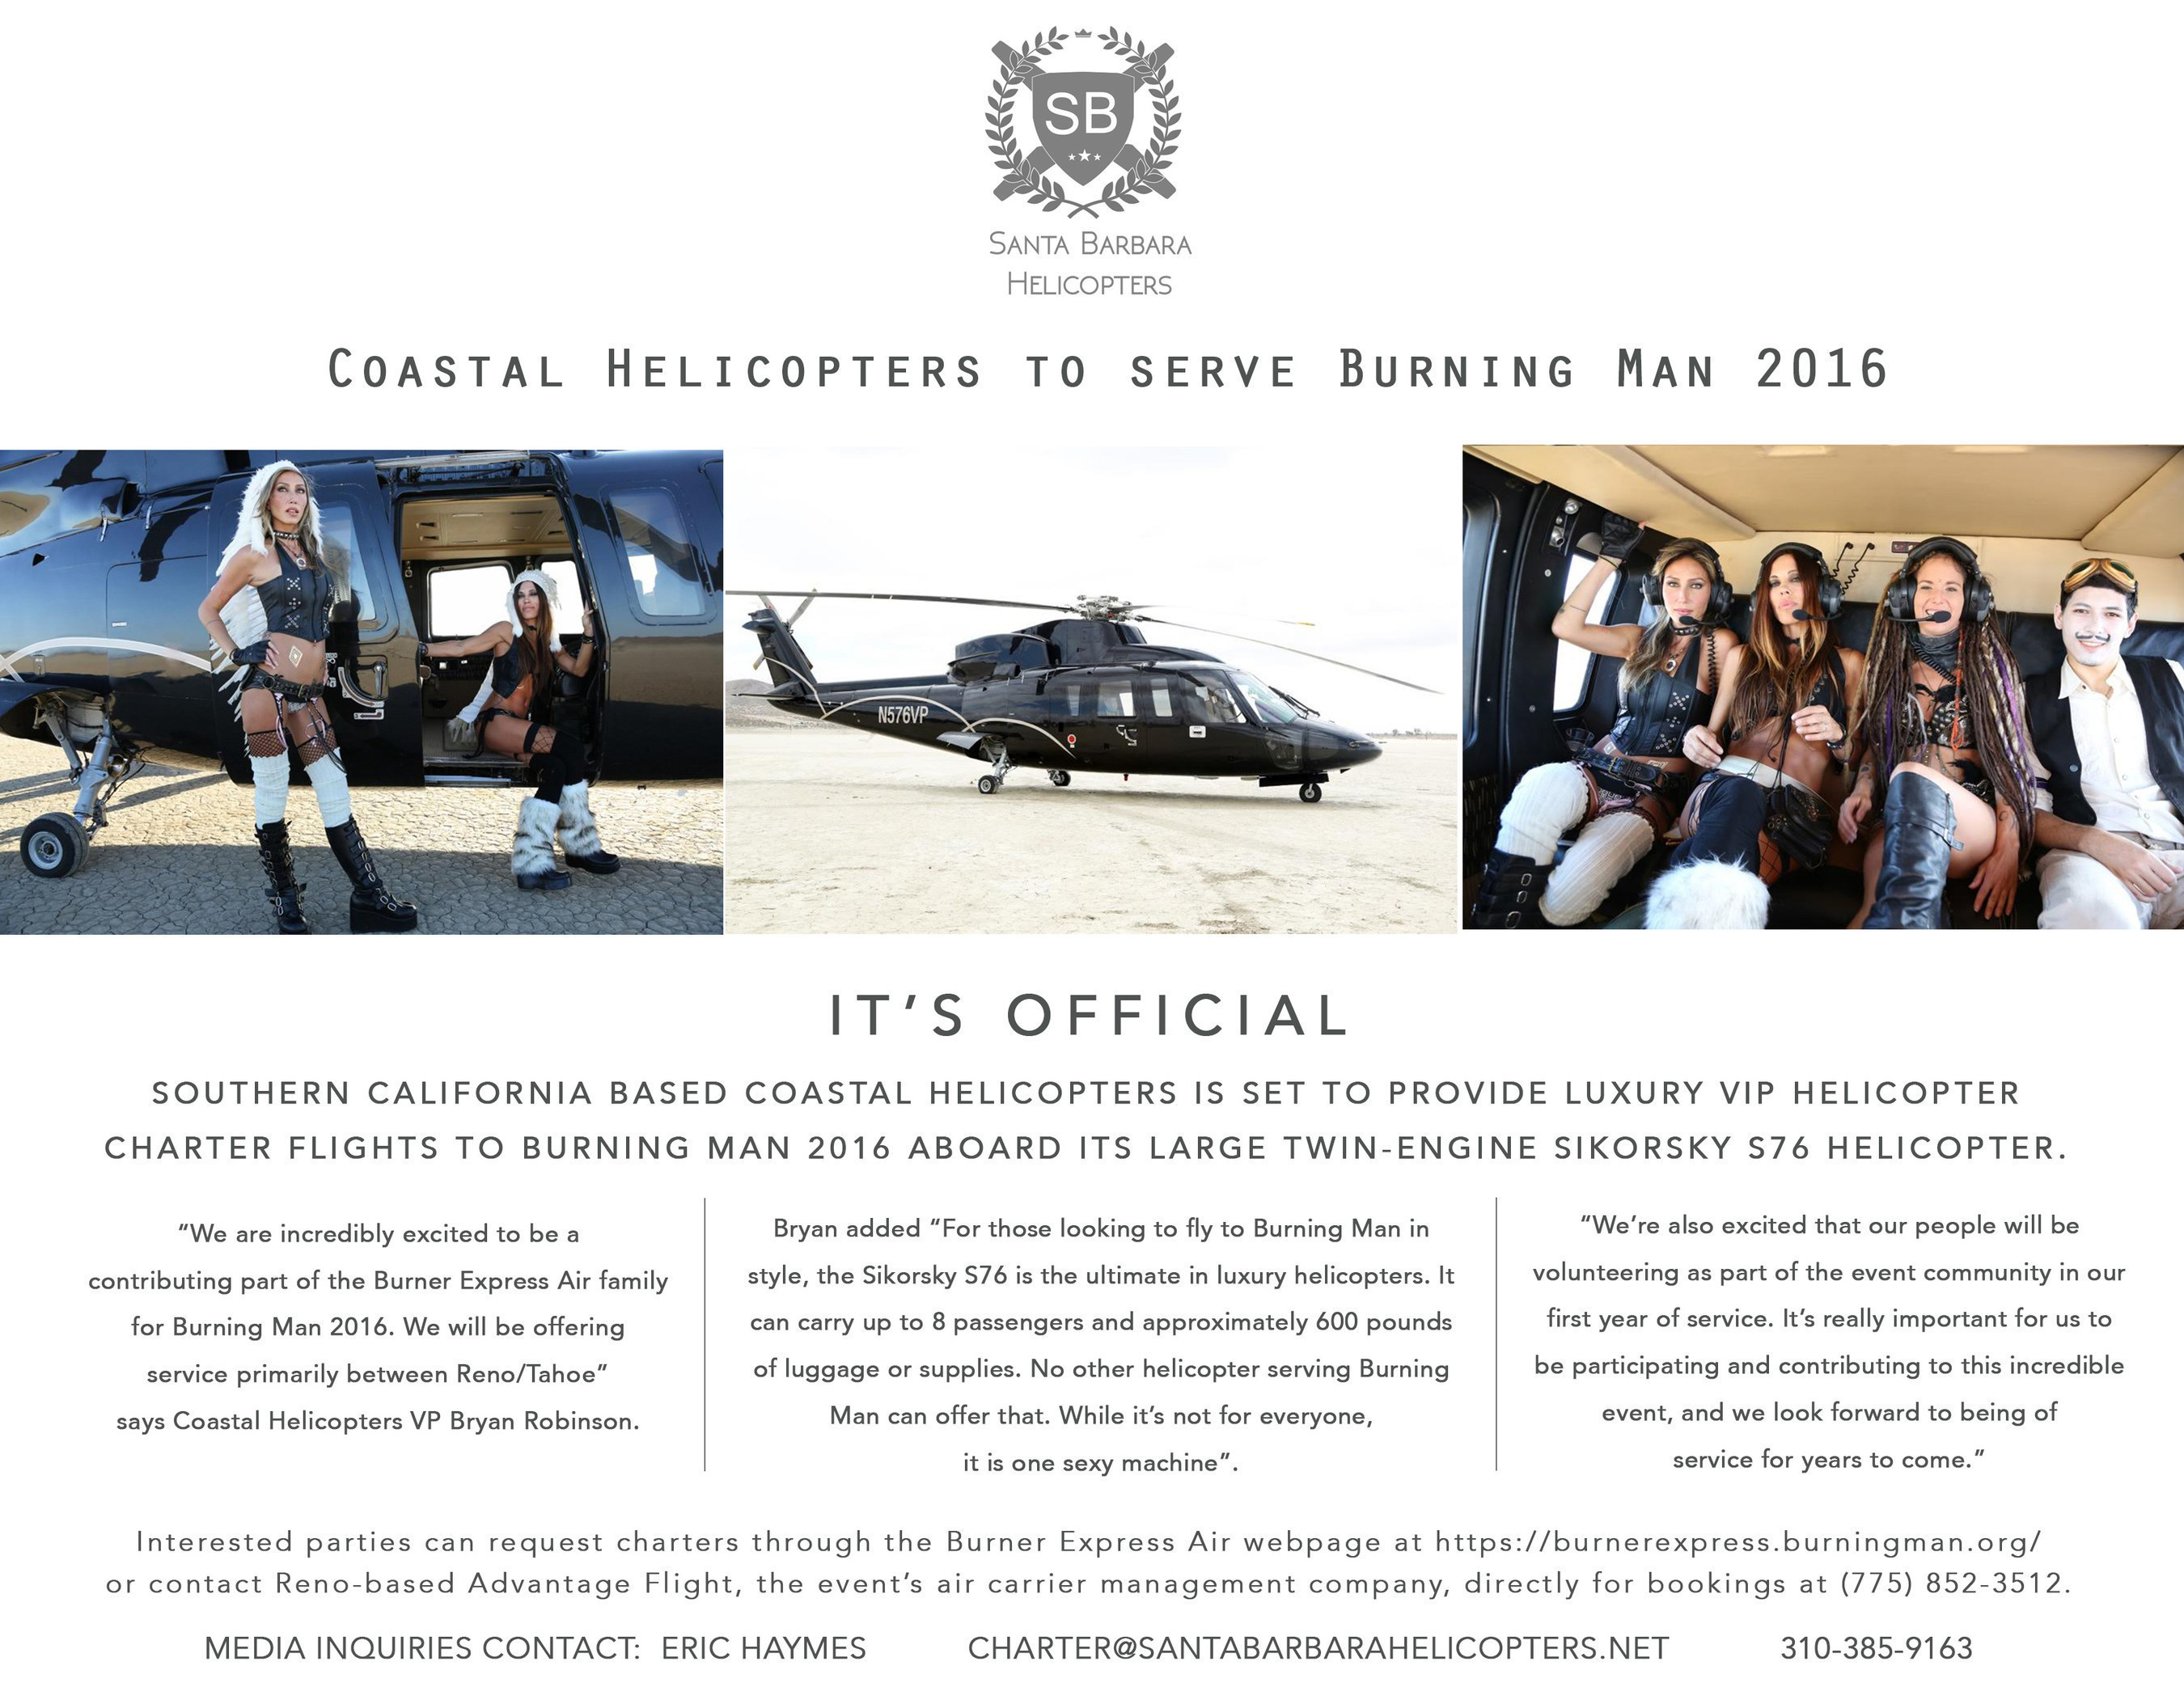 Luxury VIP helicopter charter flights to Burning Man 2016